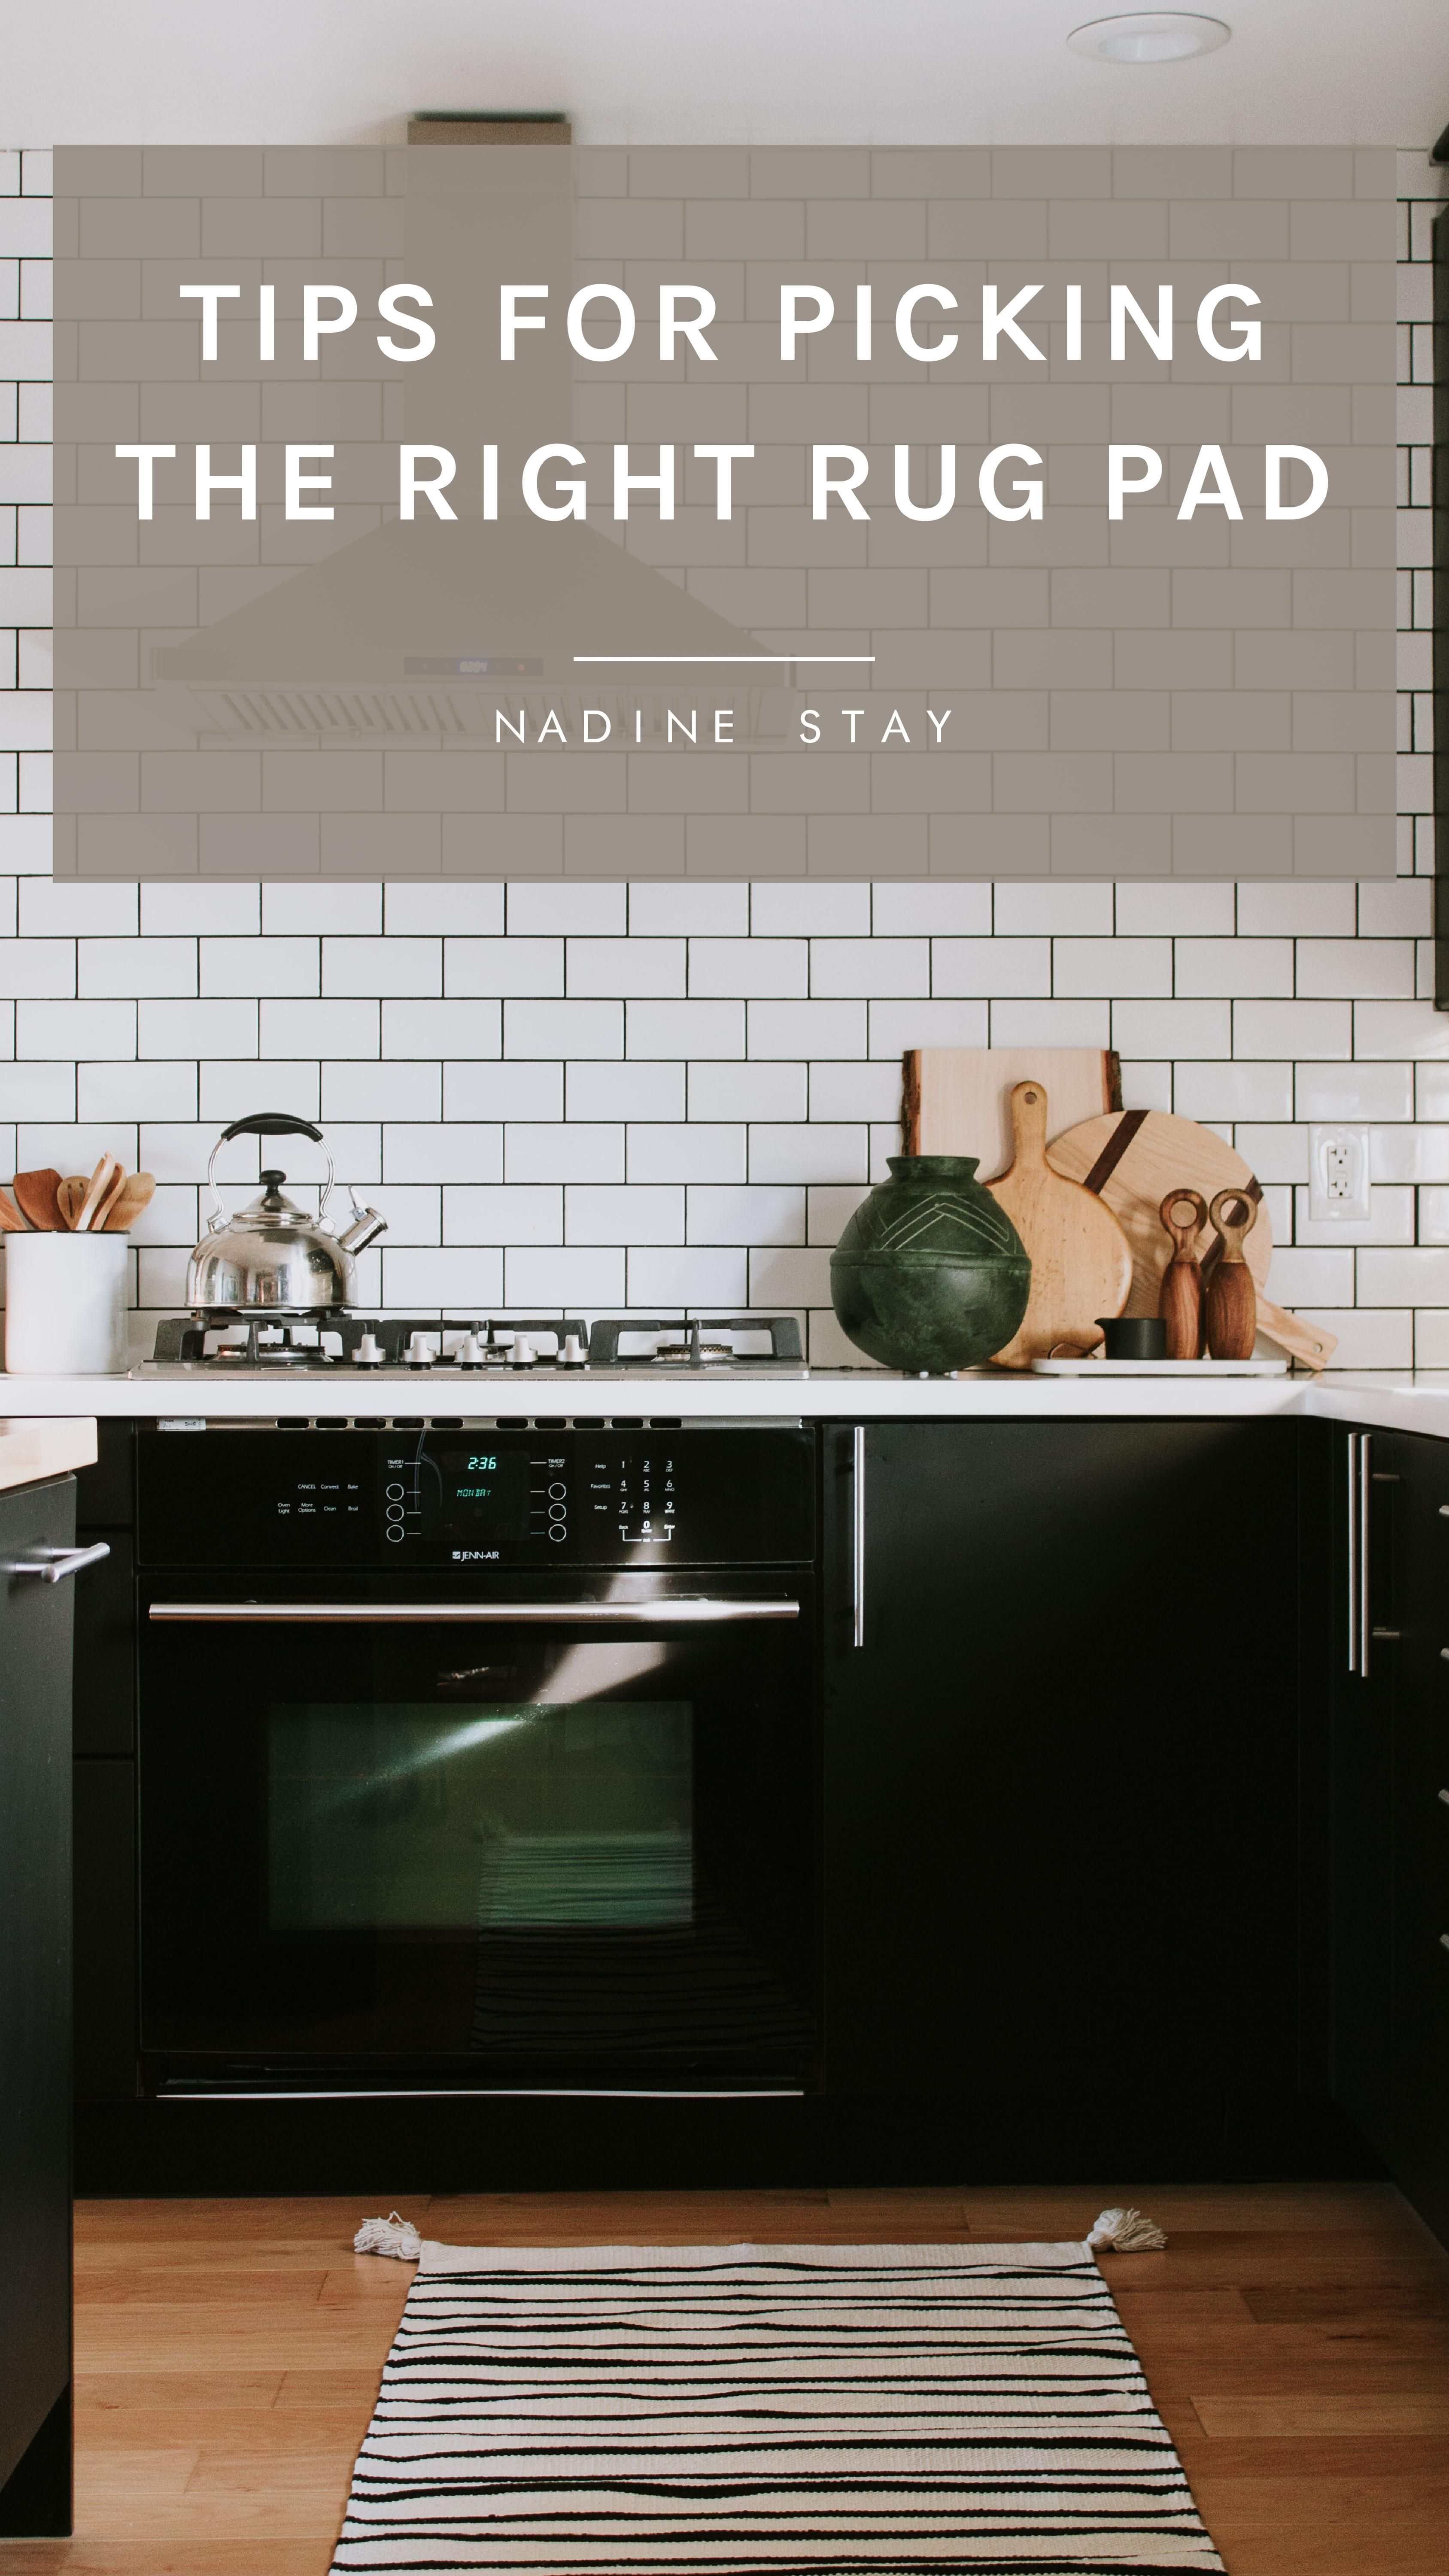 What Kind Of Rug Pad Do You Need 5 Rug Pad Recommendations Nadine Stay Kitchen Inspirations Interior Design Basics Rug Pad